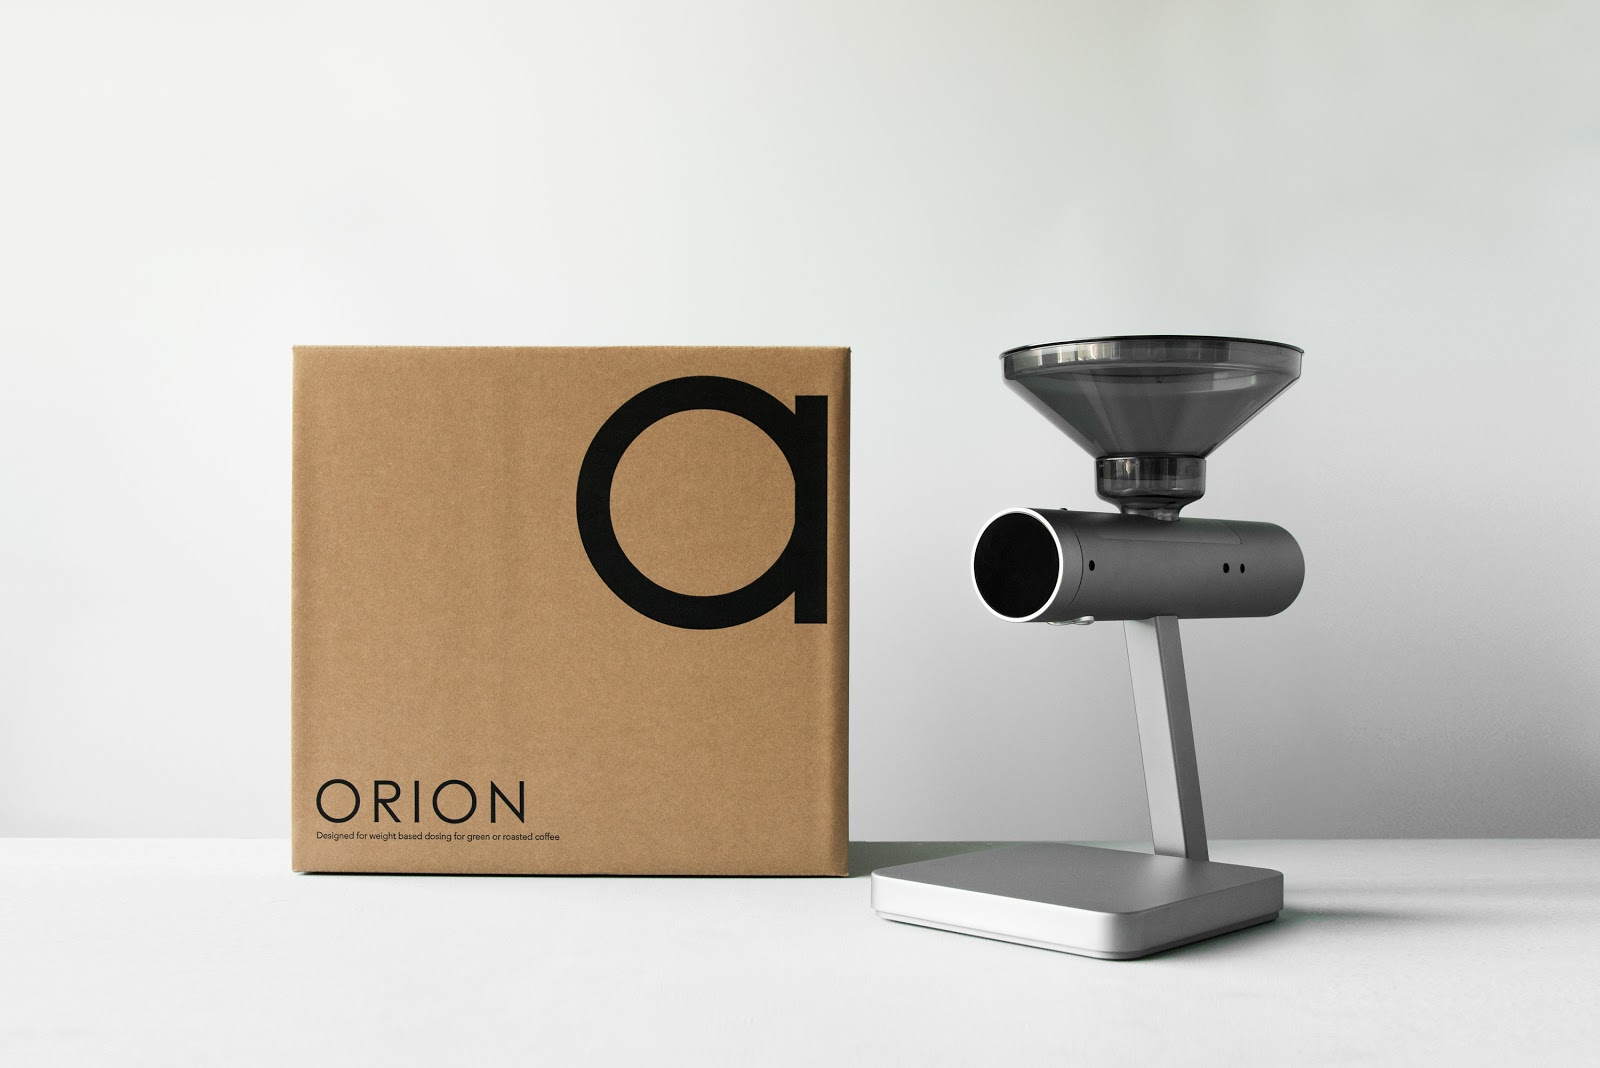 Orion_Packaging_02.jpg